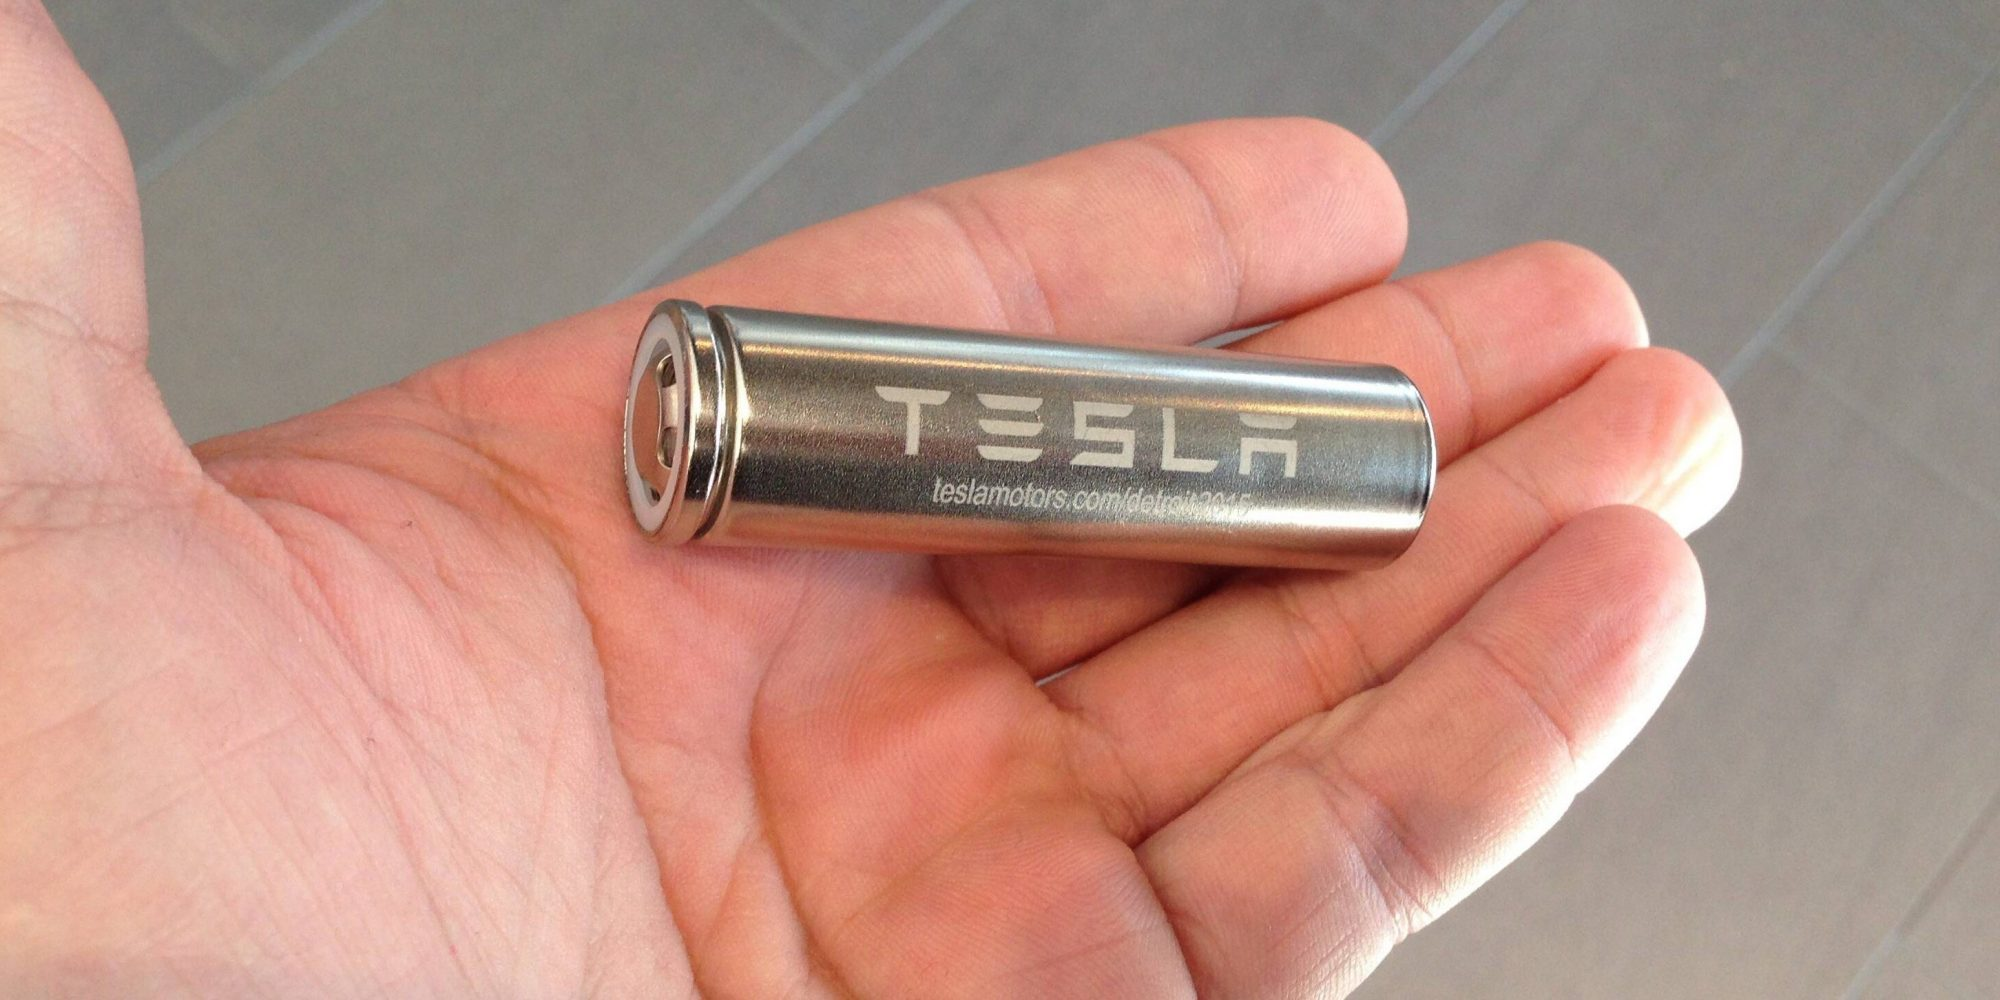 Tesla researchers show path to next-gen battery cell with breakthrough energy density - Electrek